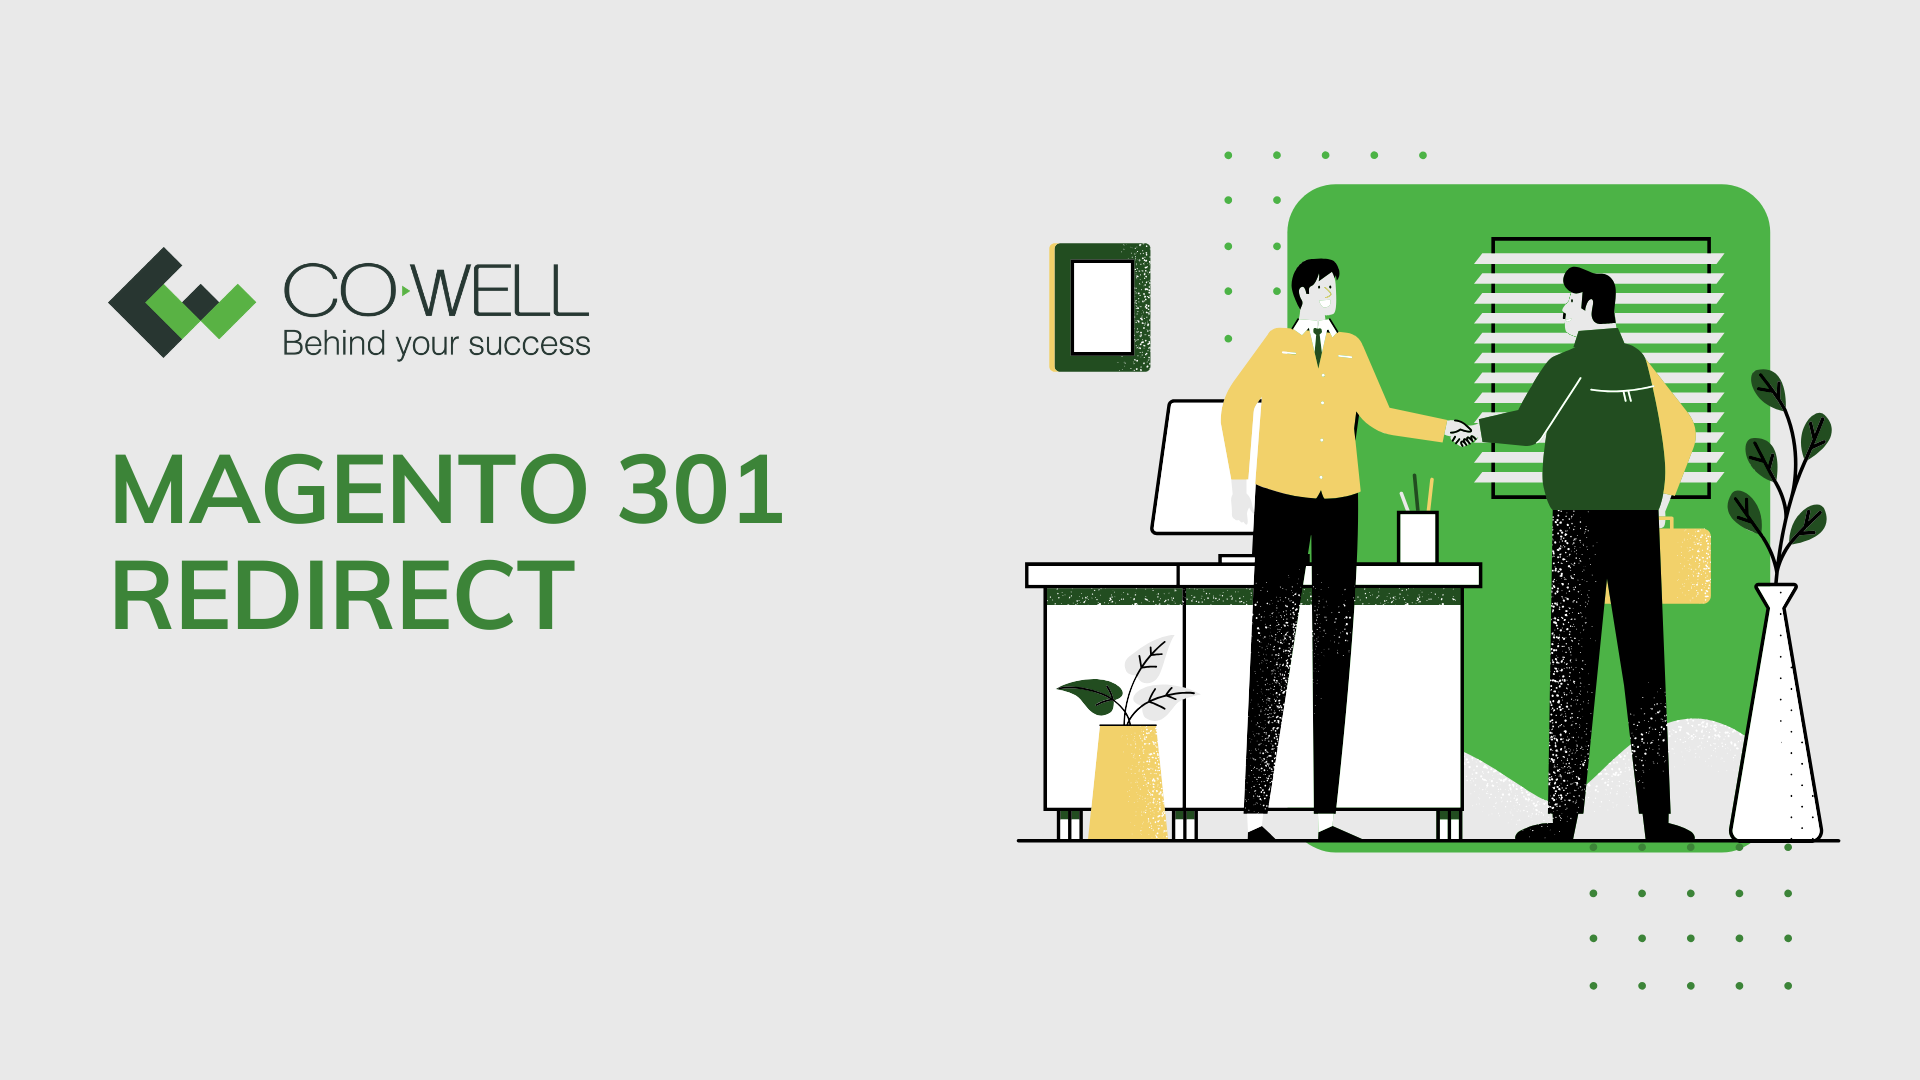 WHY DO YOU NEED MAGENTO 301 REDIRECT?